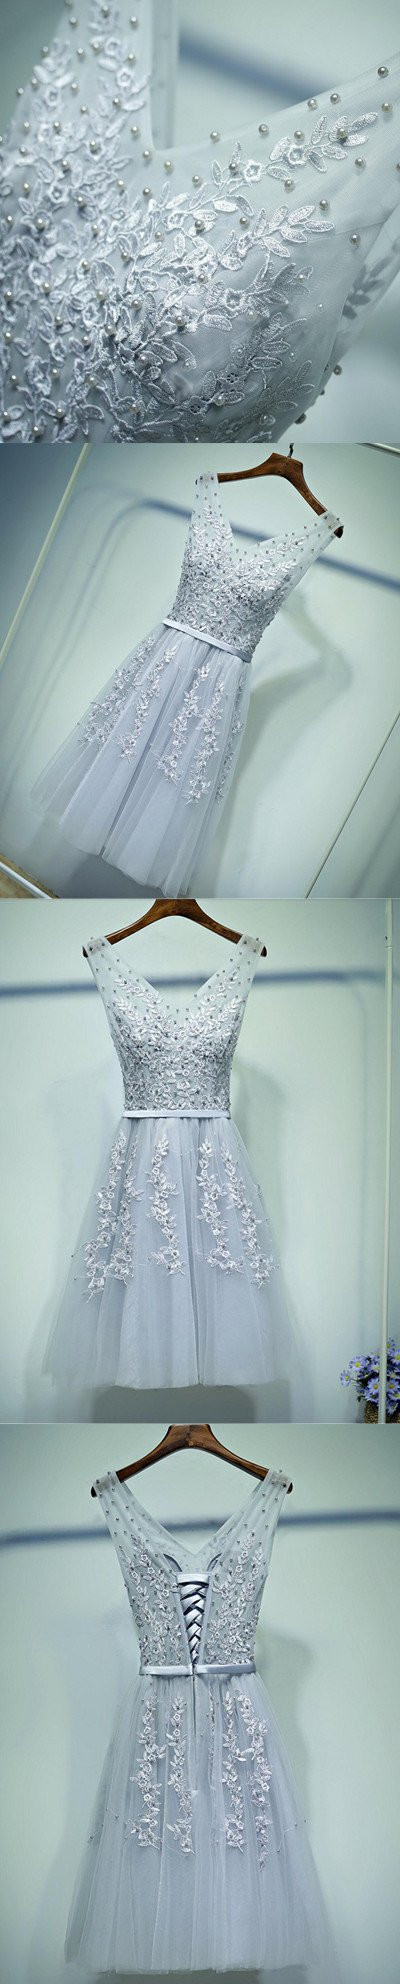 Cute Gray Lace v Neckline Short Homecoming Prom Dresses, Affordable Corset Back Short Party Prom Dresses, Perfect Homecoming Dresses, CM247